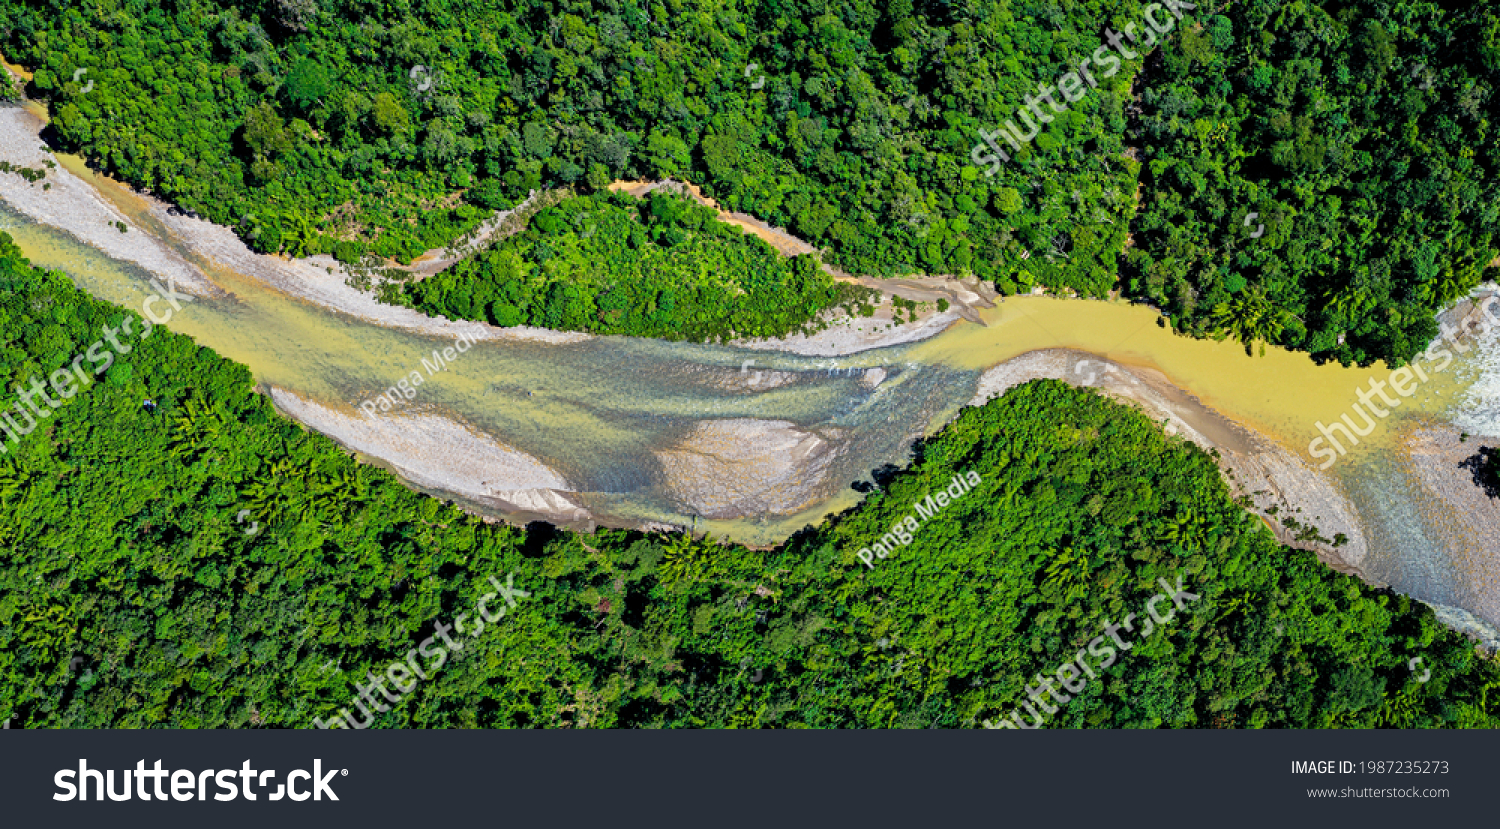 Panorama of a tropical river meandering through the rainforest